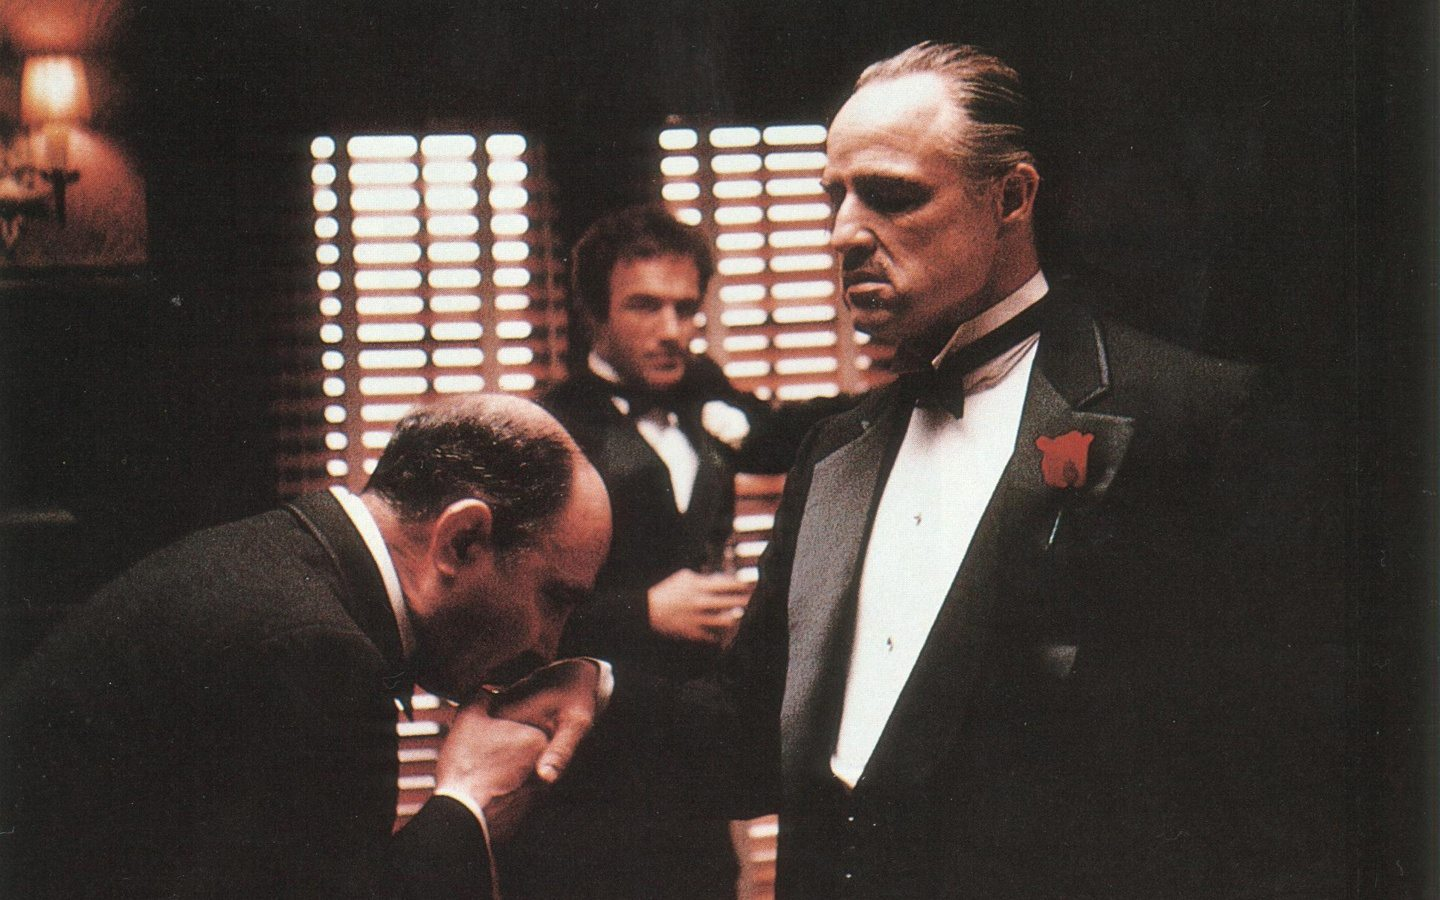 A picture that shows how the movie The Godfather can explain the difference between b2b and b2c landing pages.